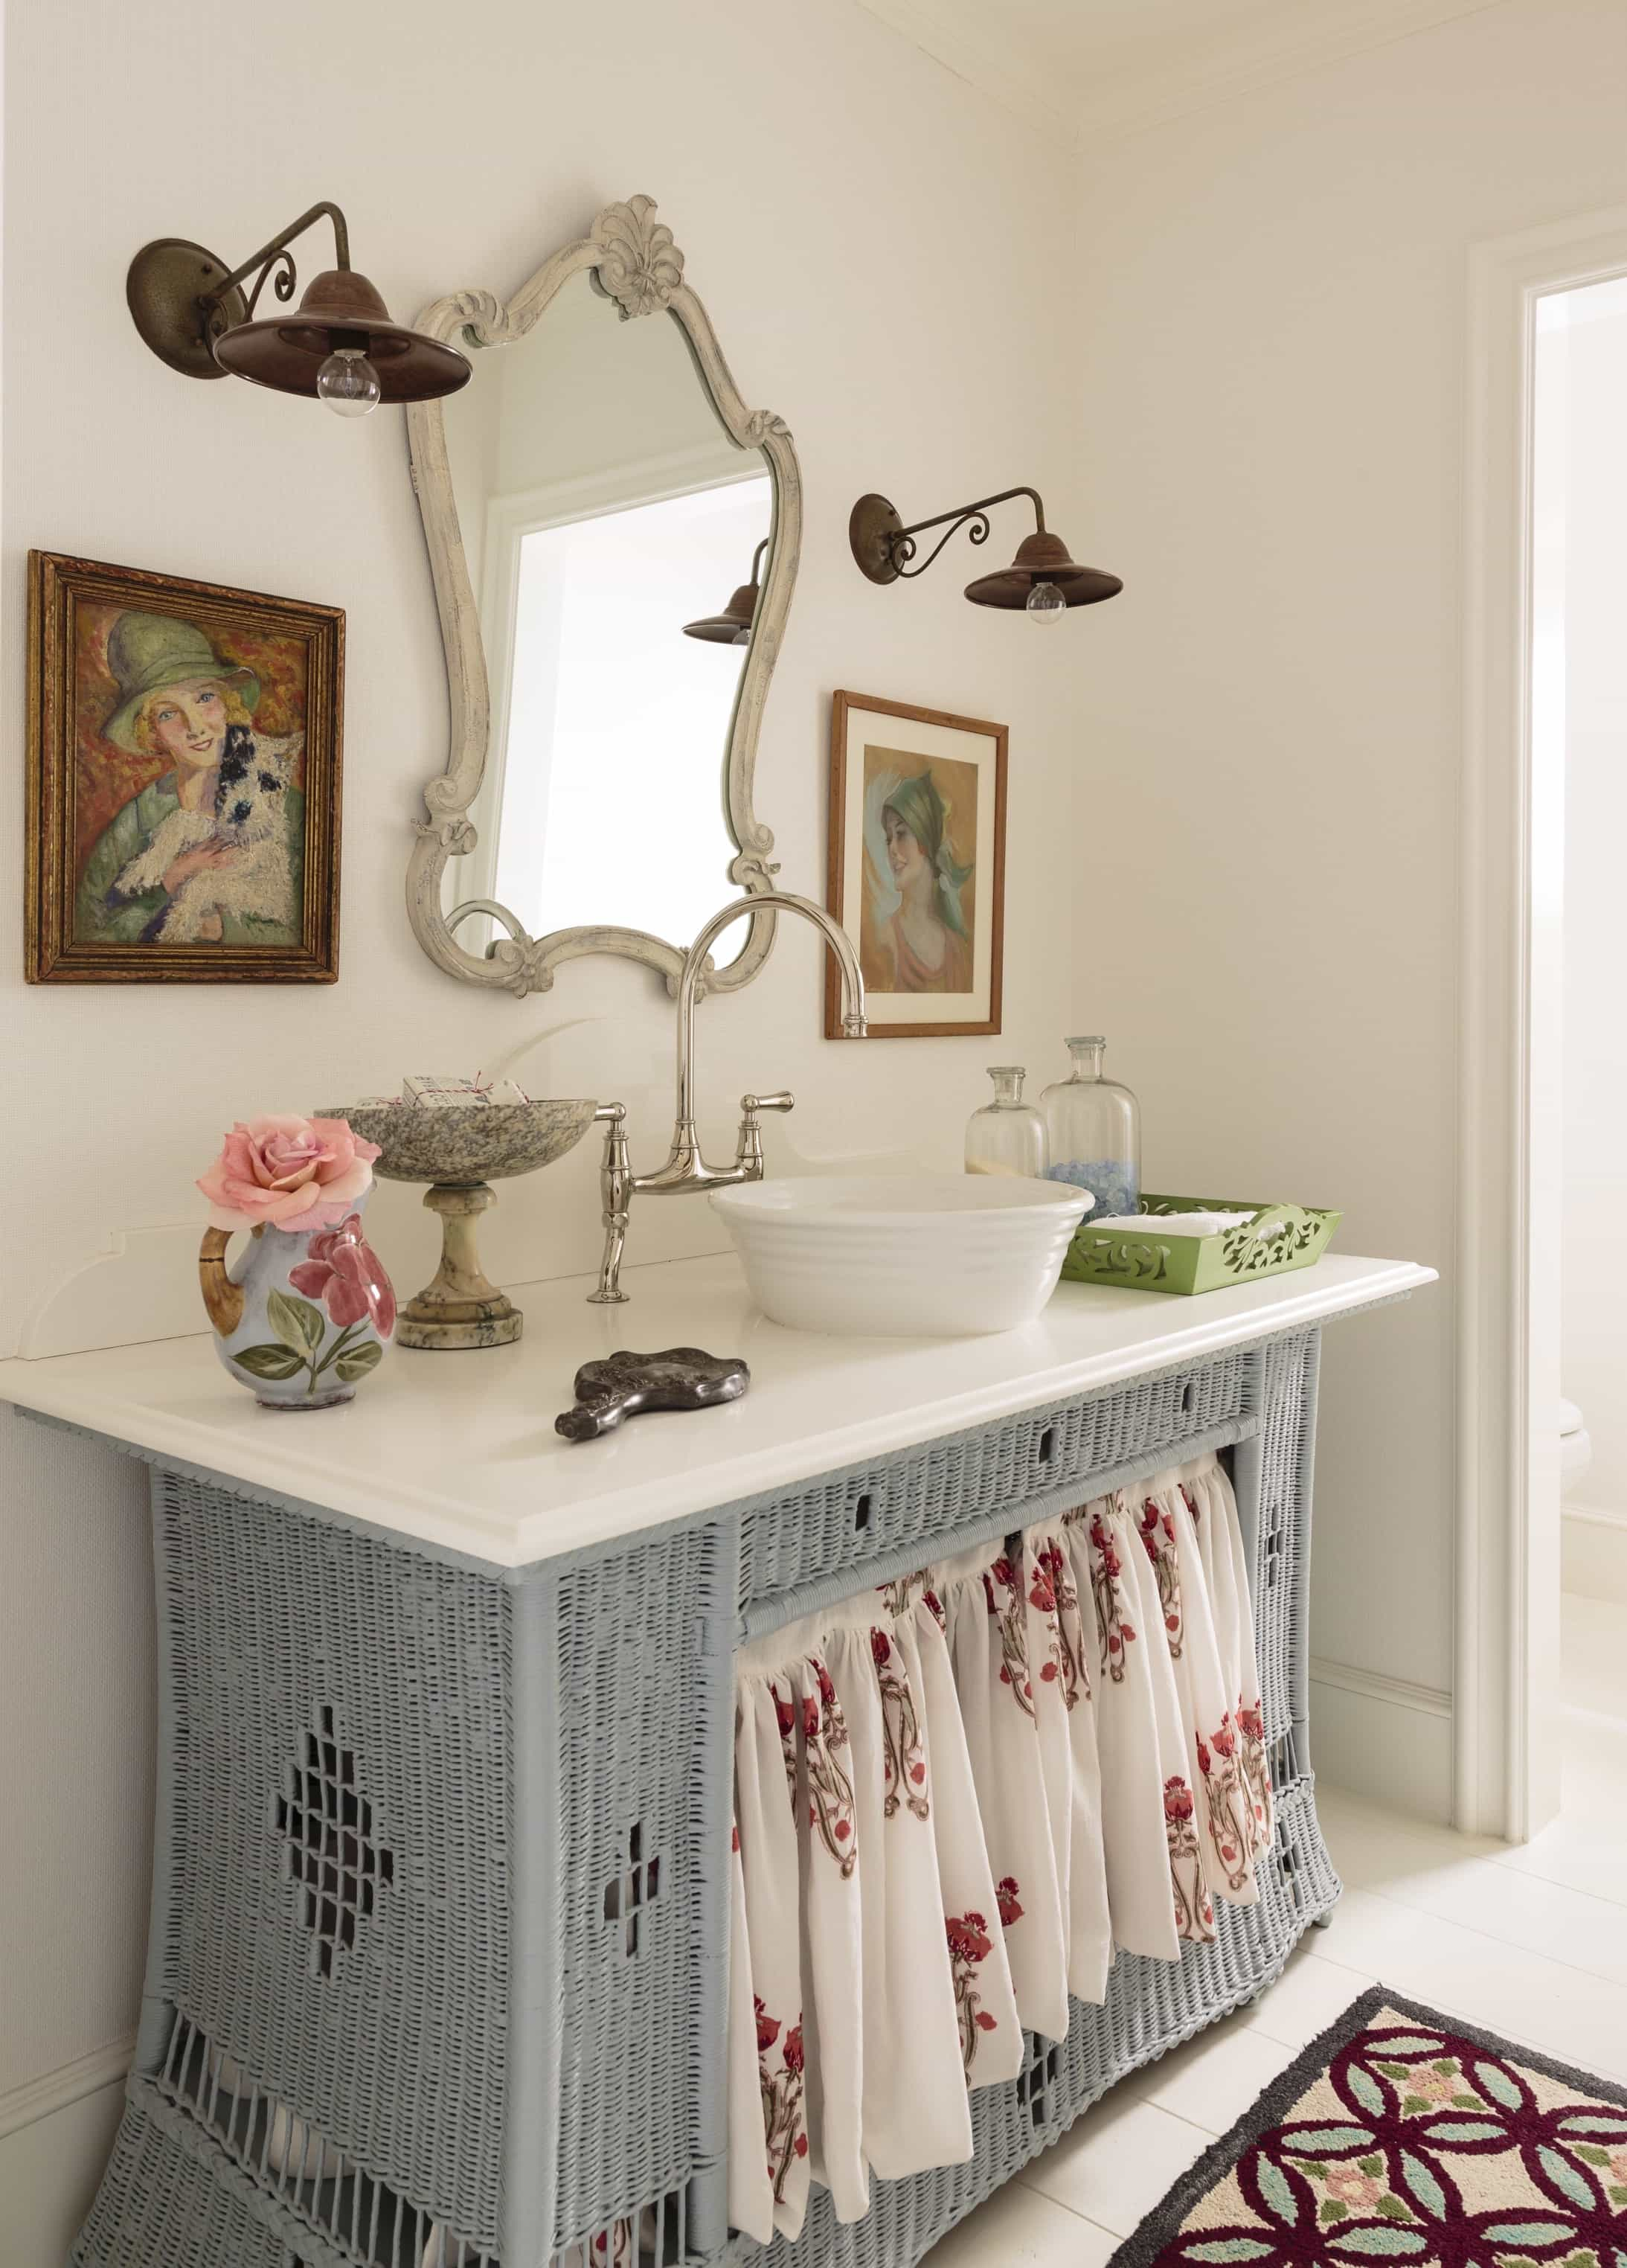 Featured Image of Blue Wicker Dresser Makes Unique Sink Base